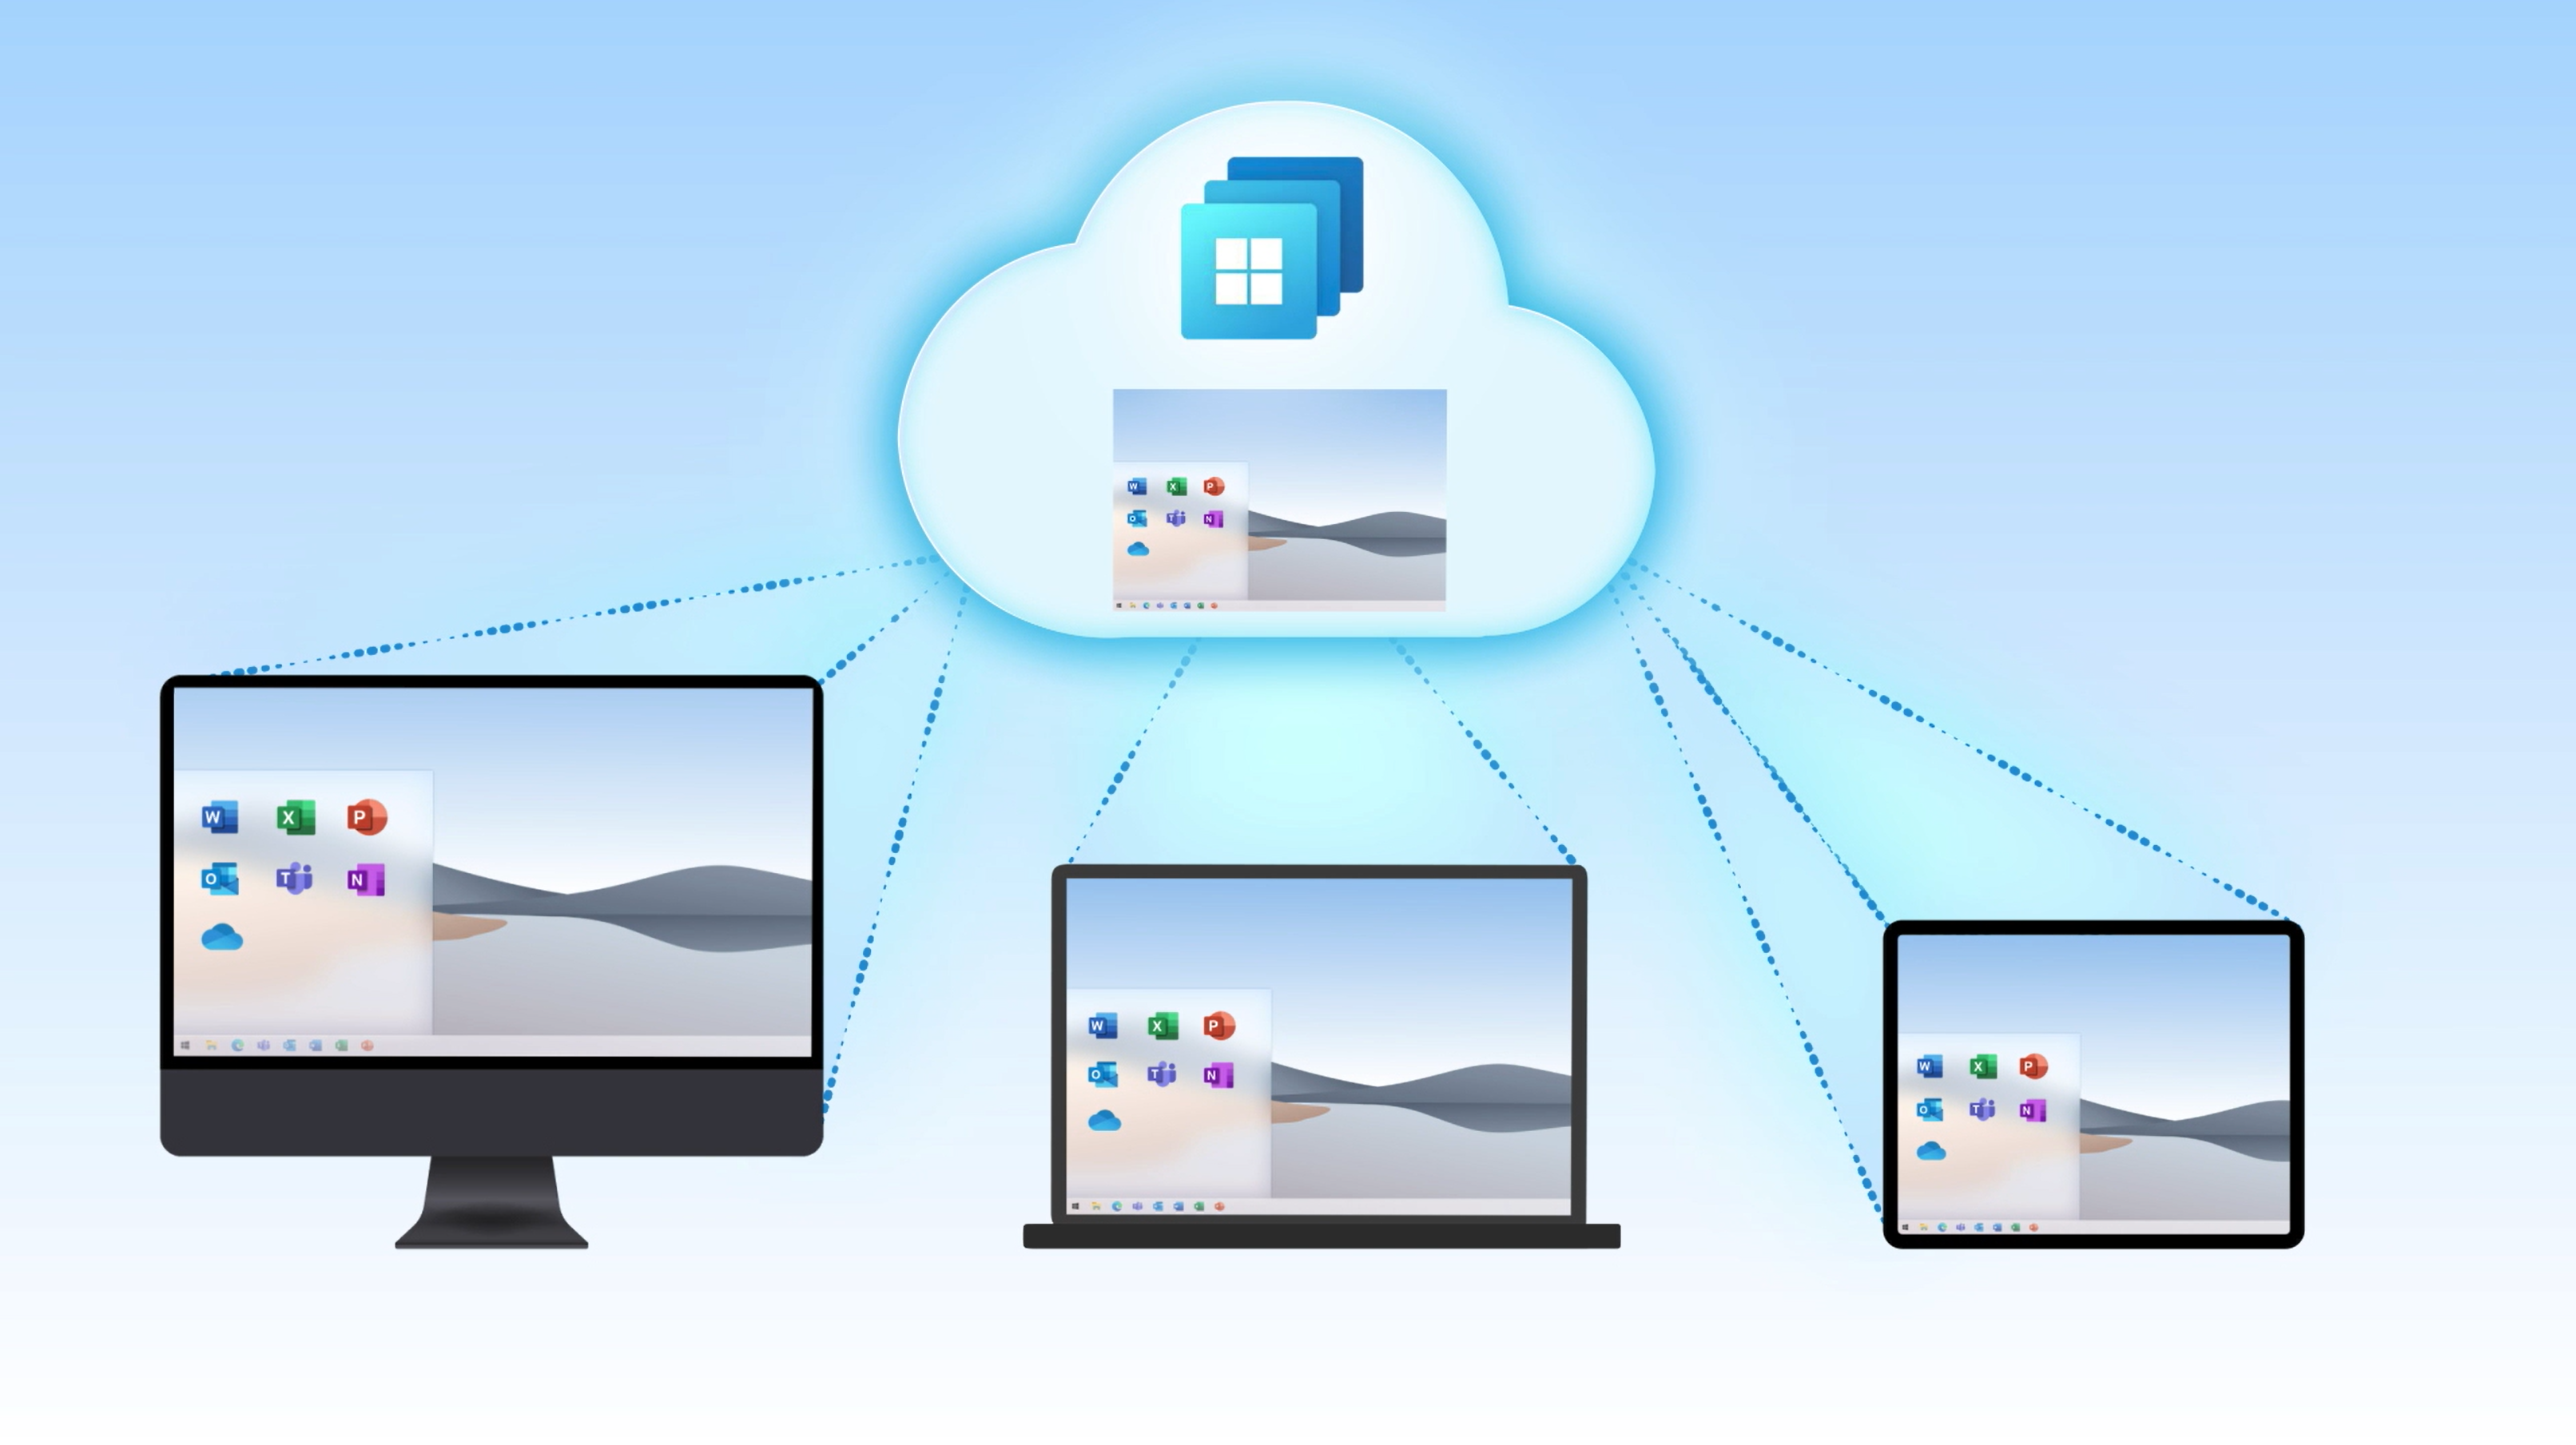 Windows 365 streaming to multiple devices.